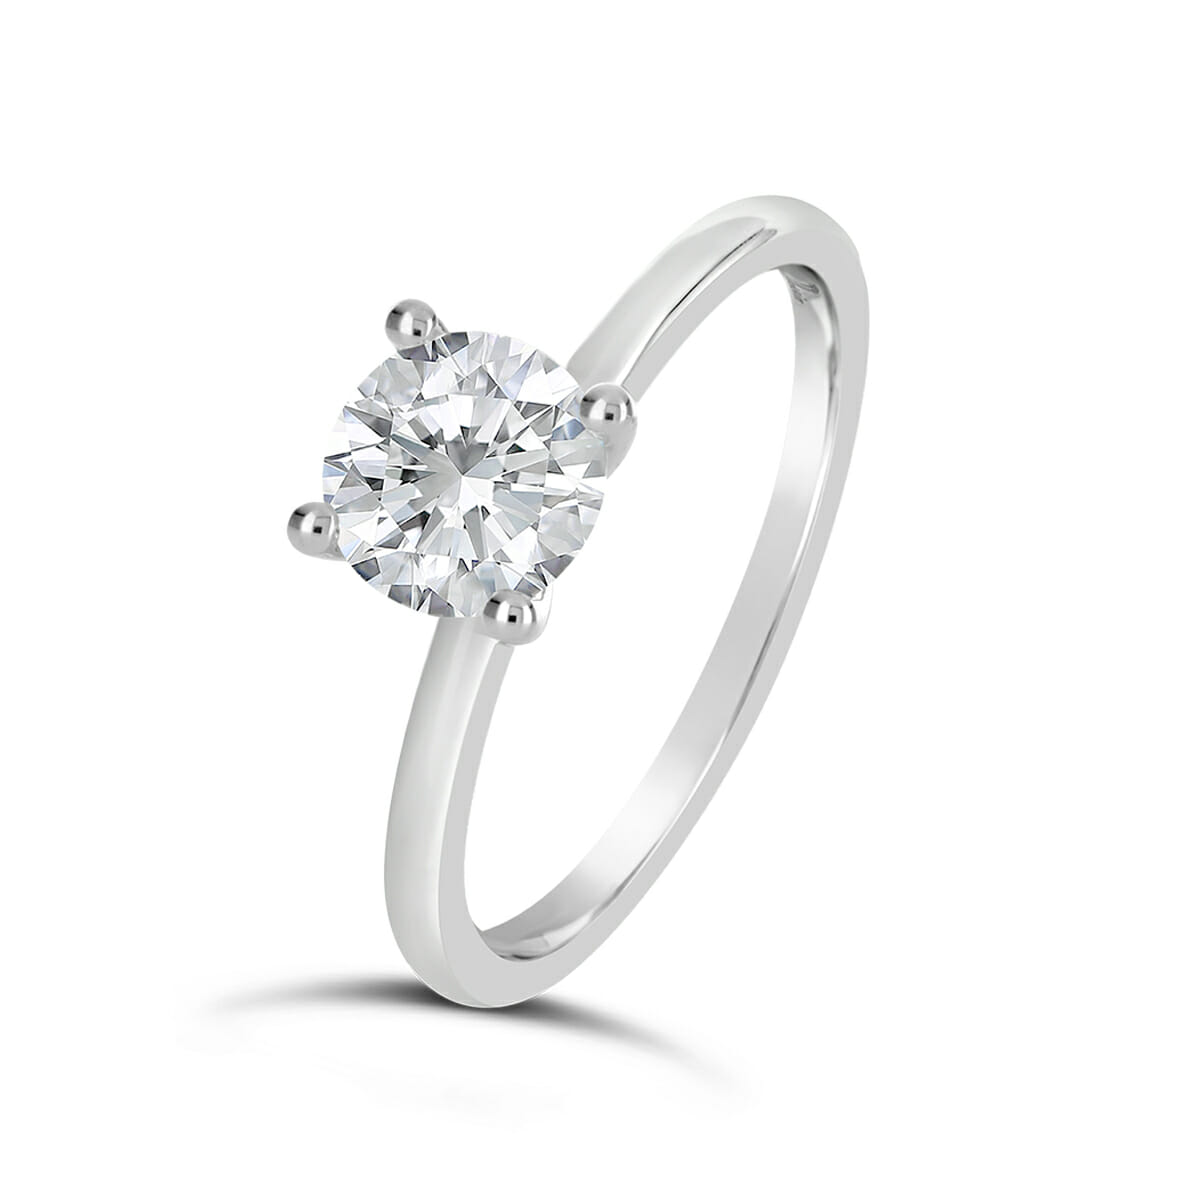 classic diamond solitaire engagement ring alessia. Black Bedroom Furniture Sets. Home Design Ideas